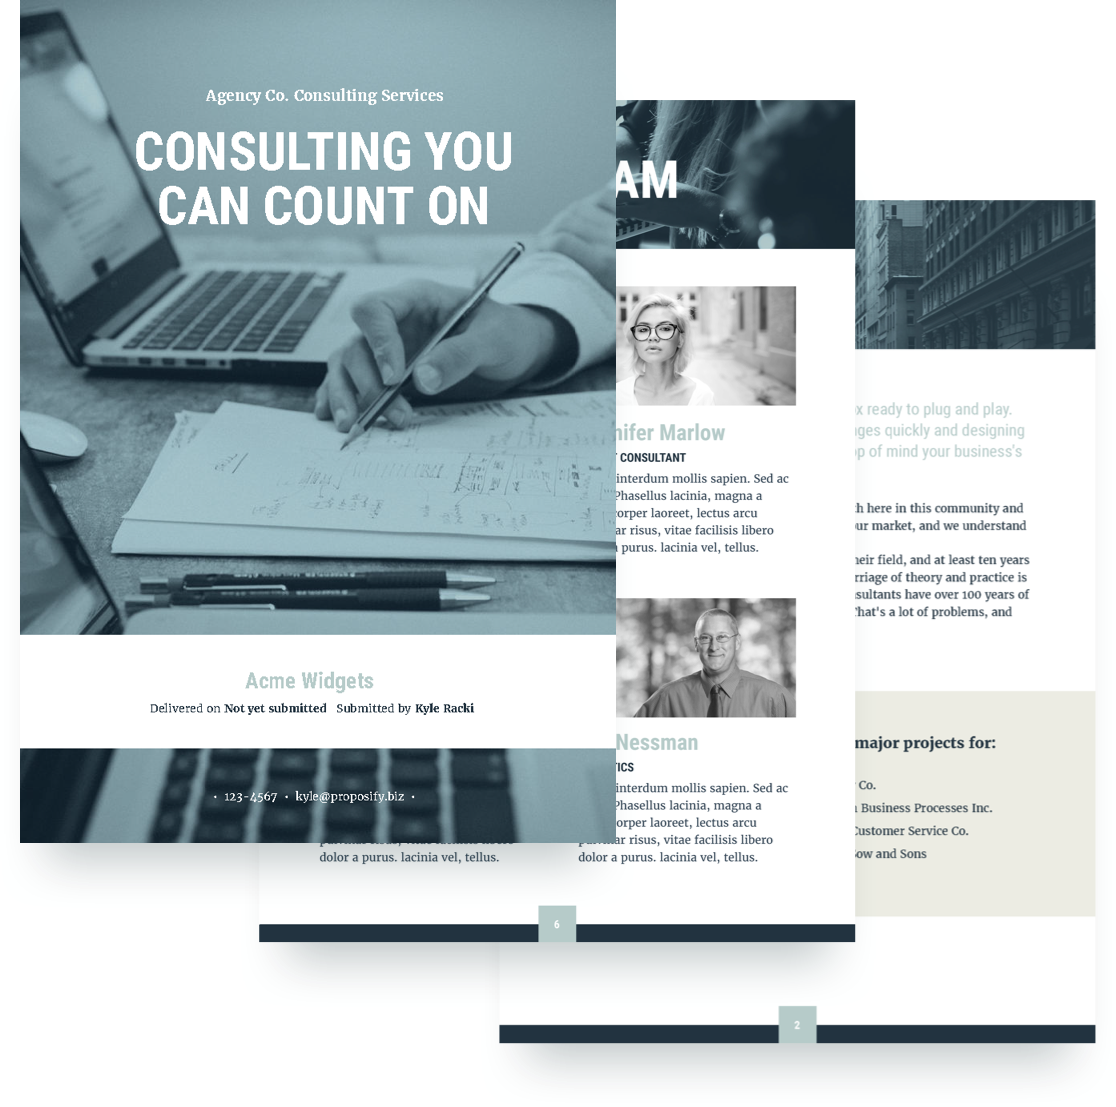 Consulting proposal template free sample consulting proposal template accmission Image collections